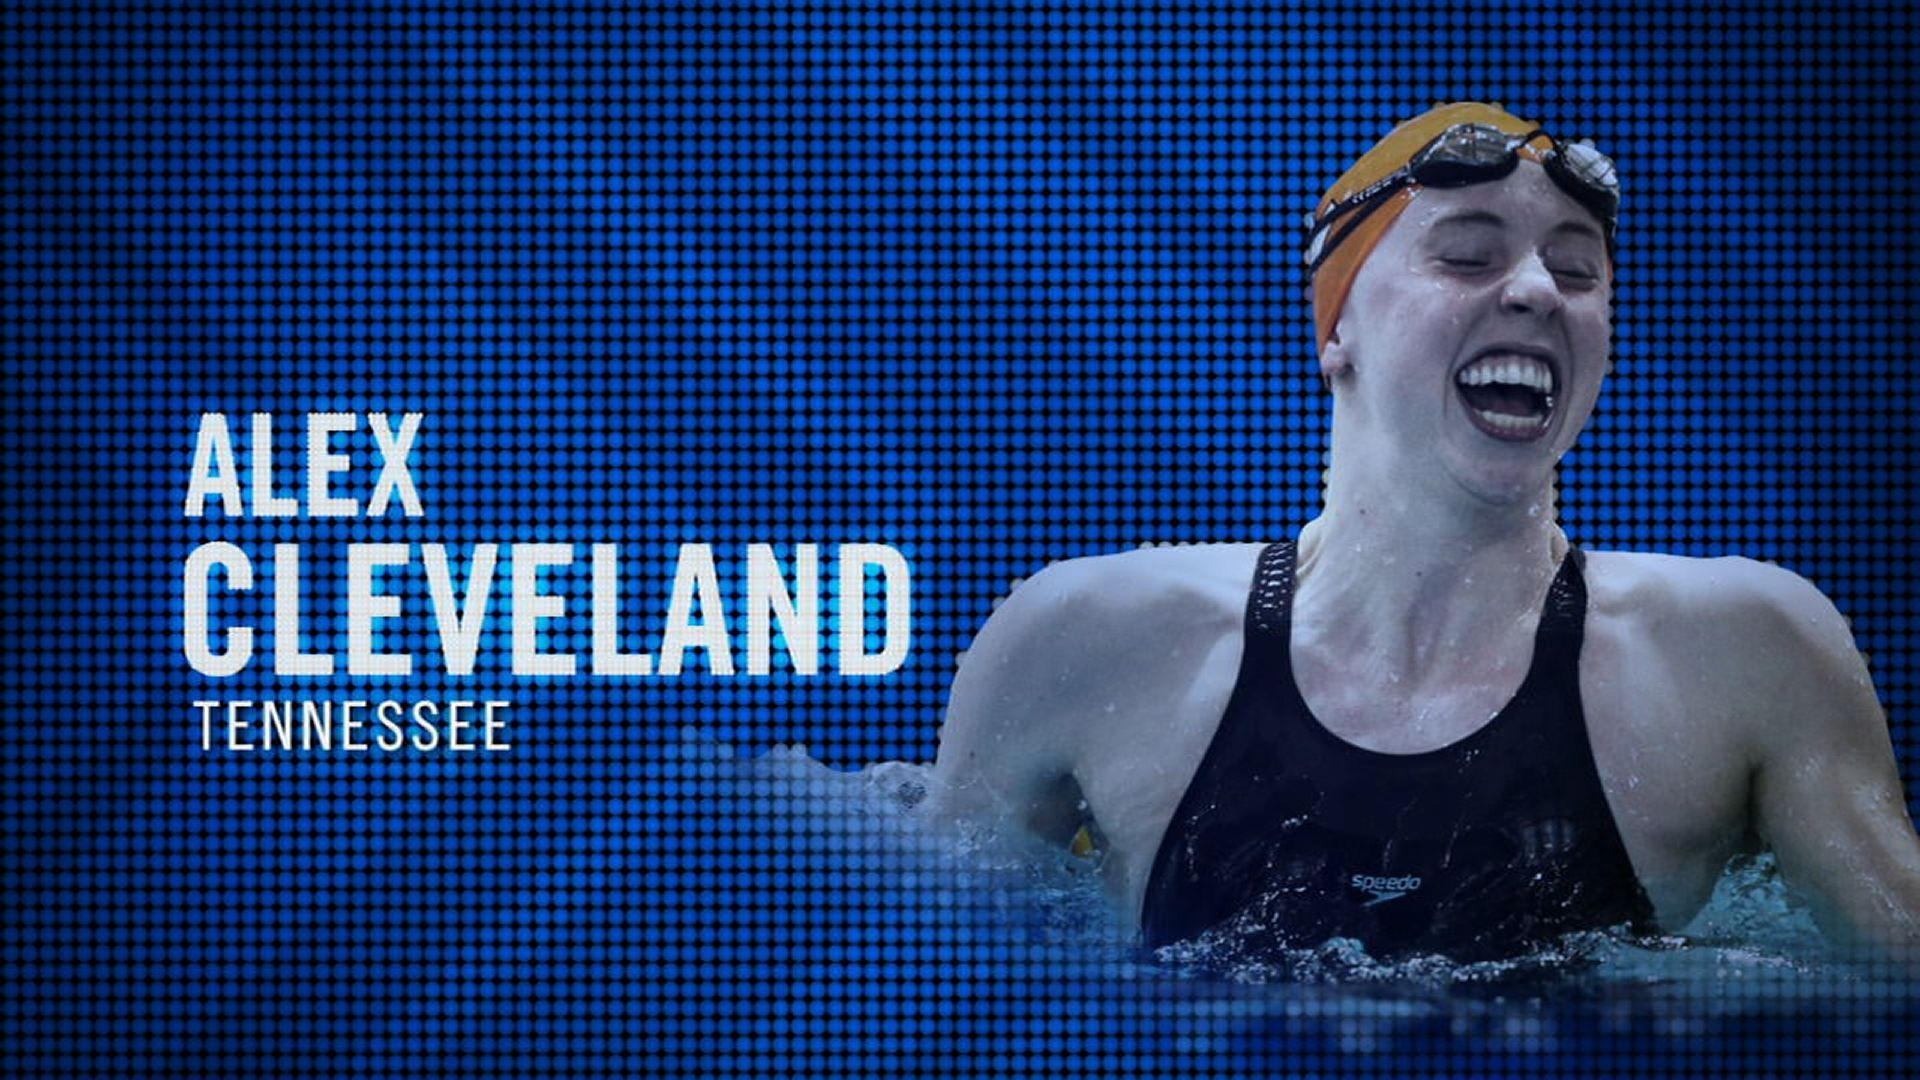 I am the SEC: Tennessee's Alex Cleveland